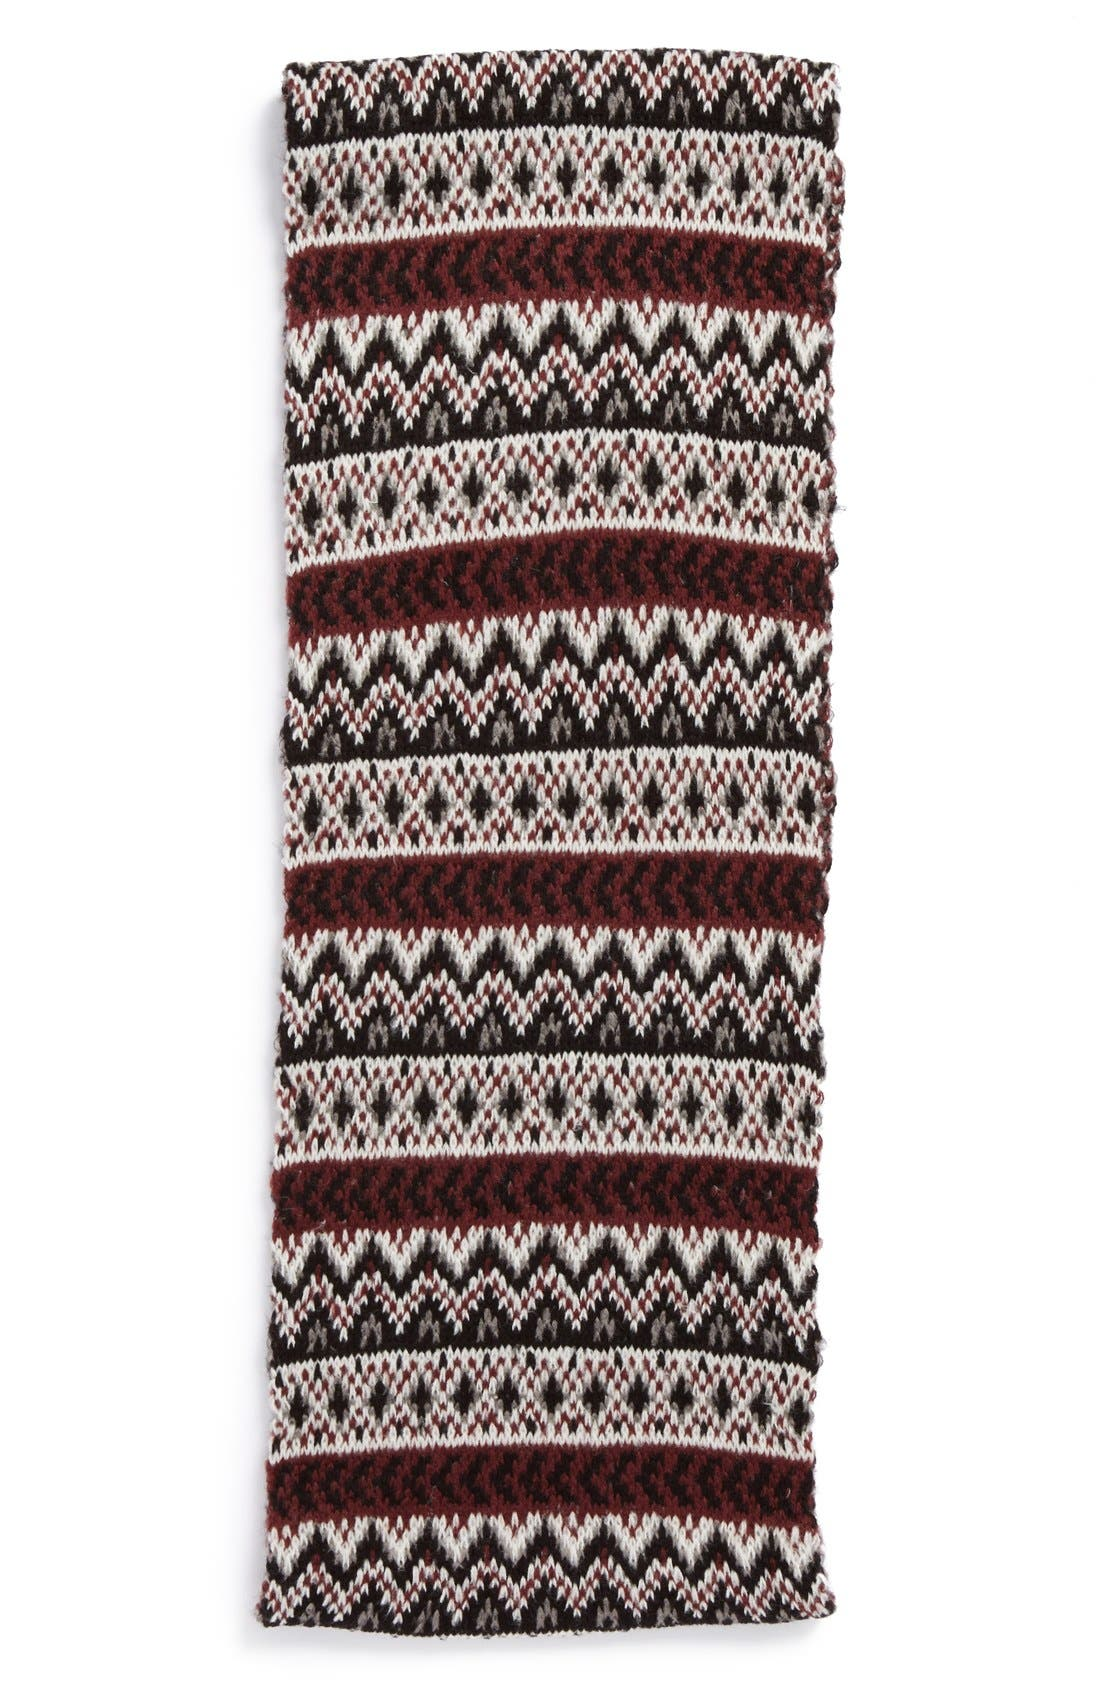 Fair Isle Infinity Scarf,                             Alternate thumbnail 2, color,                             Black